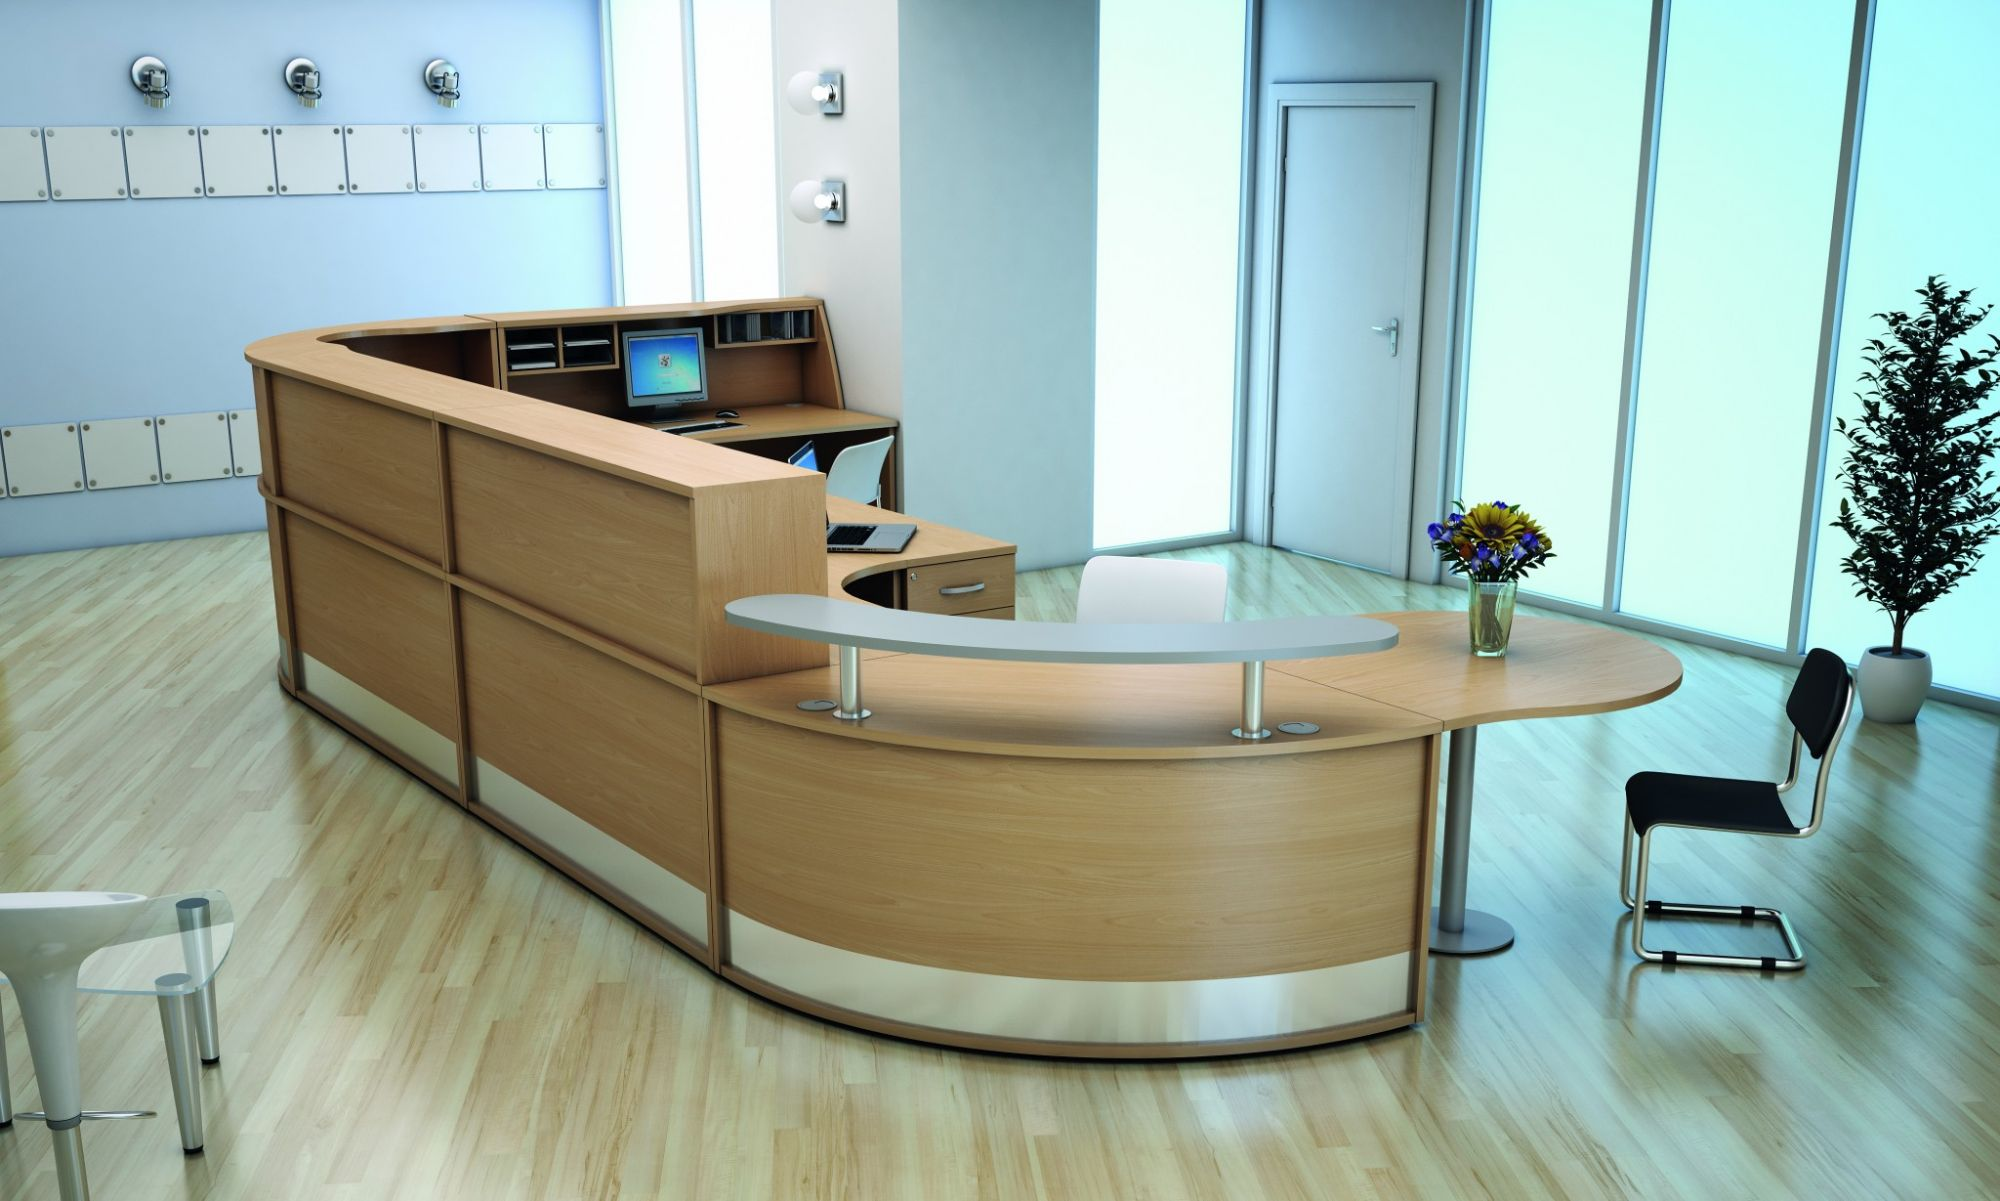 curved office desks. 3018 · page 18 \u0026 19 main image curved office desks o